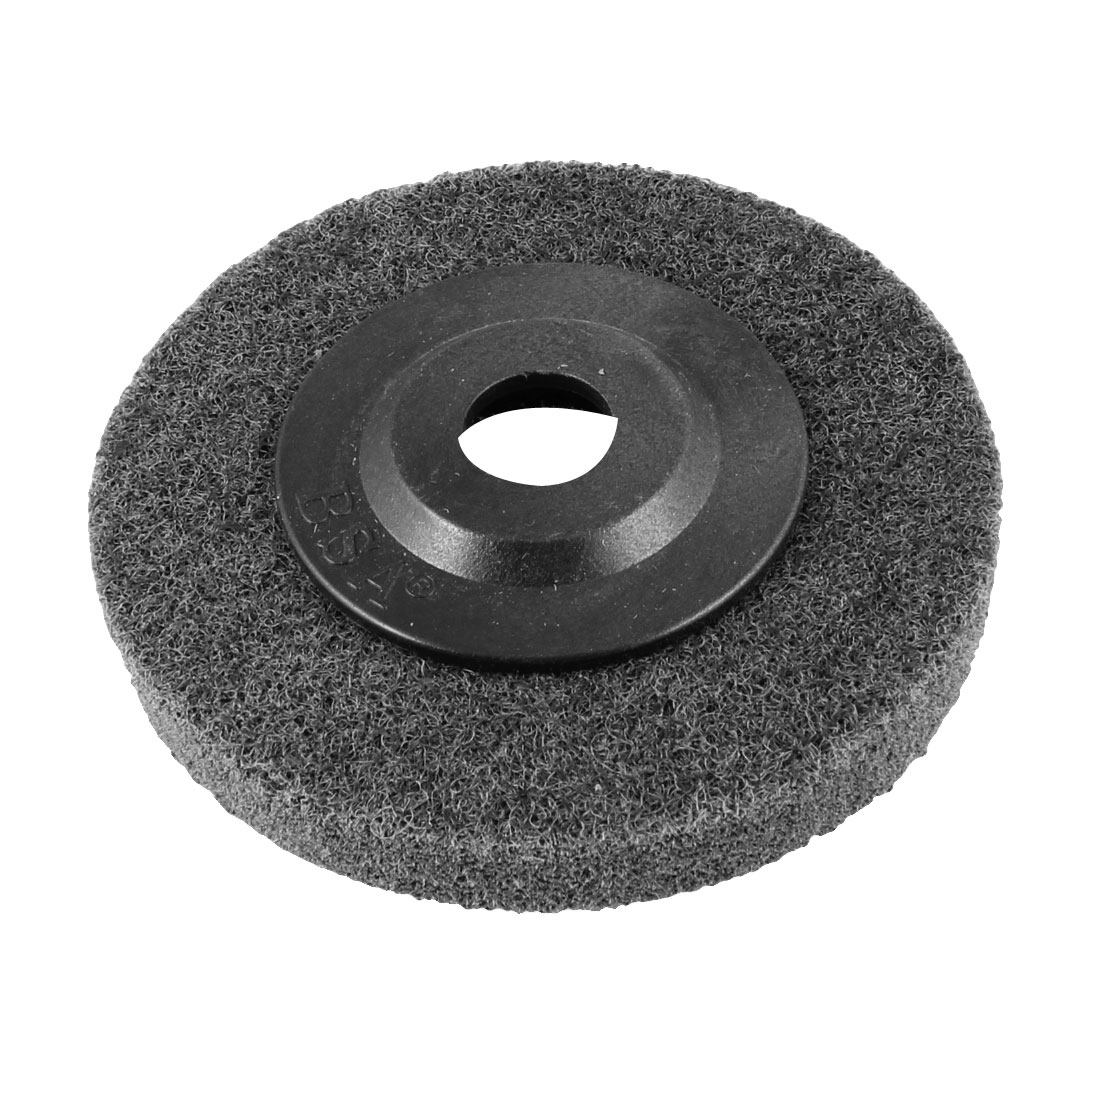 Round Shaped Metal Cleaning Nylon Polishing Scouring Abrasive Pad 4""